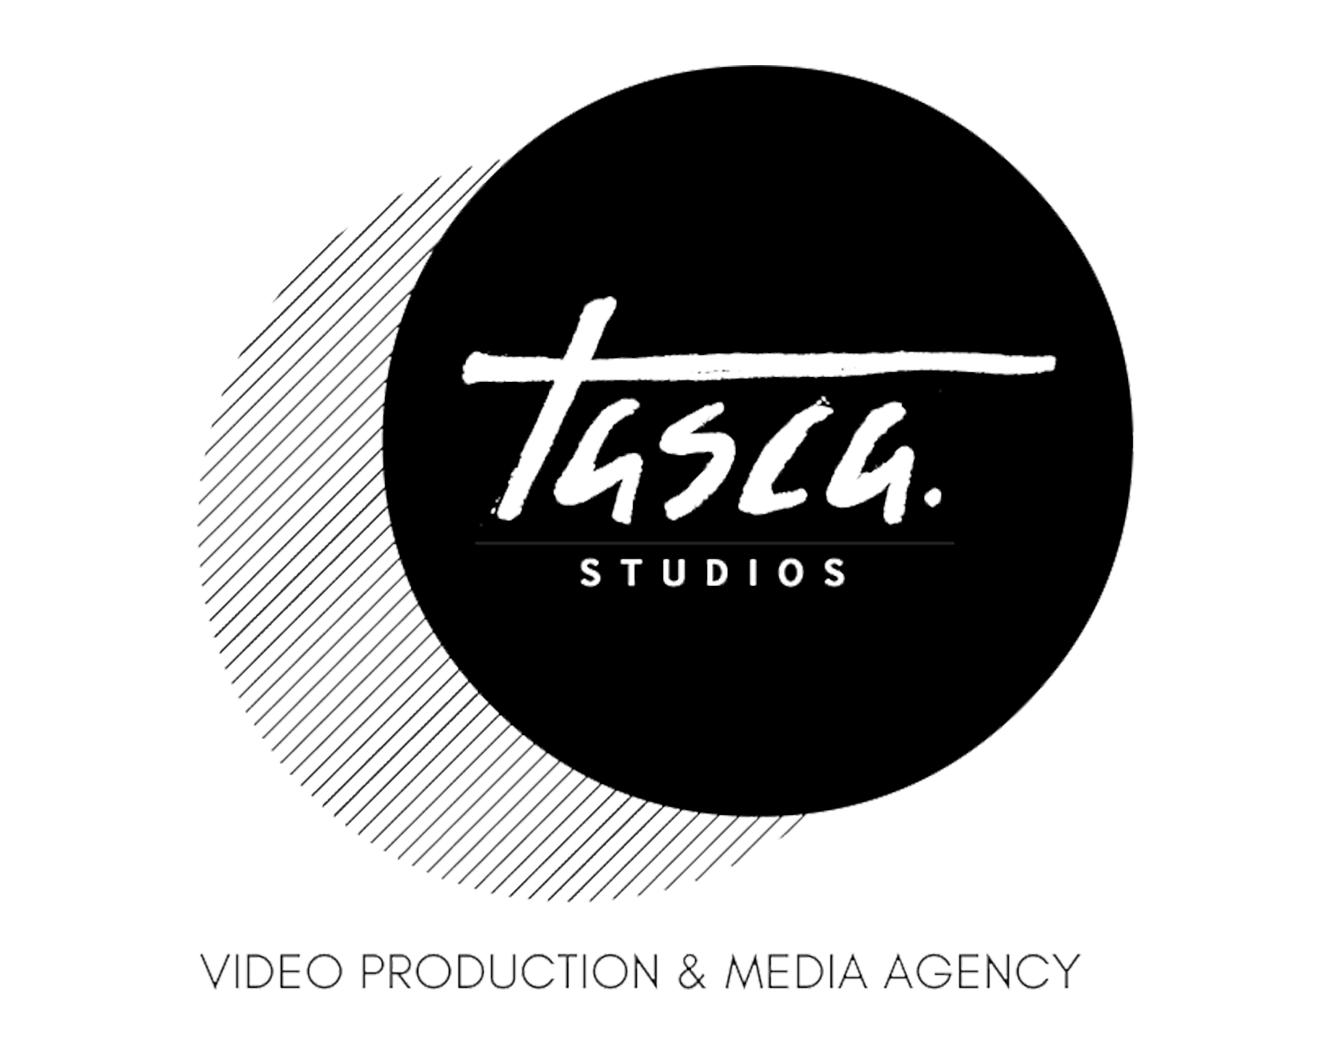 Video Production and Media Agency in Pompano Beach, FL | 561.881.6431